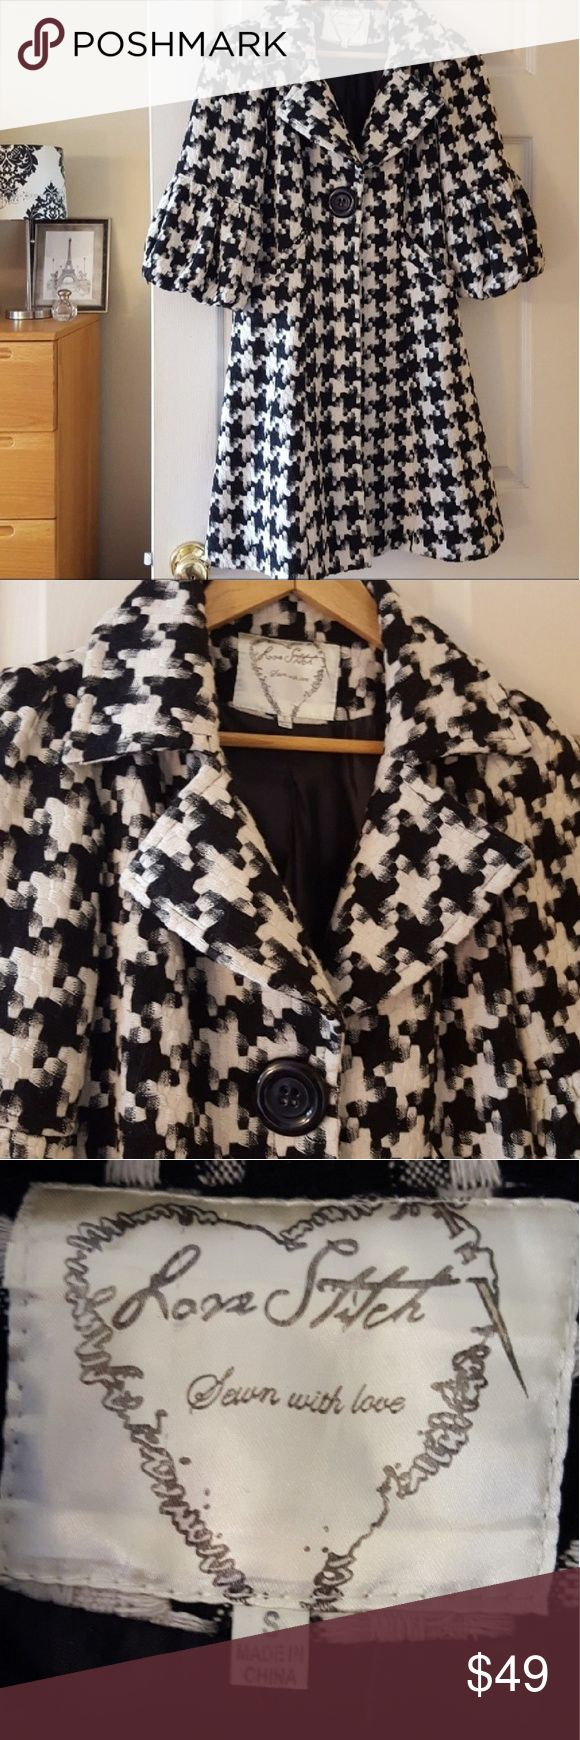 """cutest houndstooth car coat ever size S Such a classic style with adorable buttons and sleeves!  Approximate measurements lying flat:  Bust: 17"""" Length:34"""" 100% cotton Machine washes like a dream, I just hang it to dry  Smoke-free home  -Reasonable offers welcome, but prices are firm on items under $10.  -No trades, please.  -All measurements are approximate  💕💕💕Thank you for shopping my closet, it means a lot to me!💕💕💕 Lovestitch Jackets & Coats"""